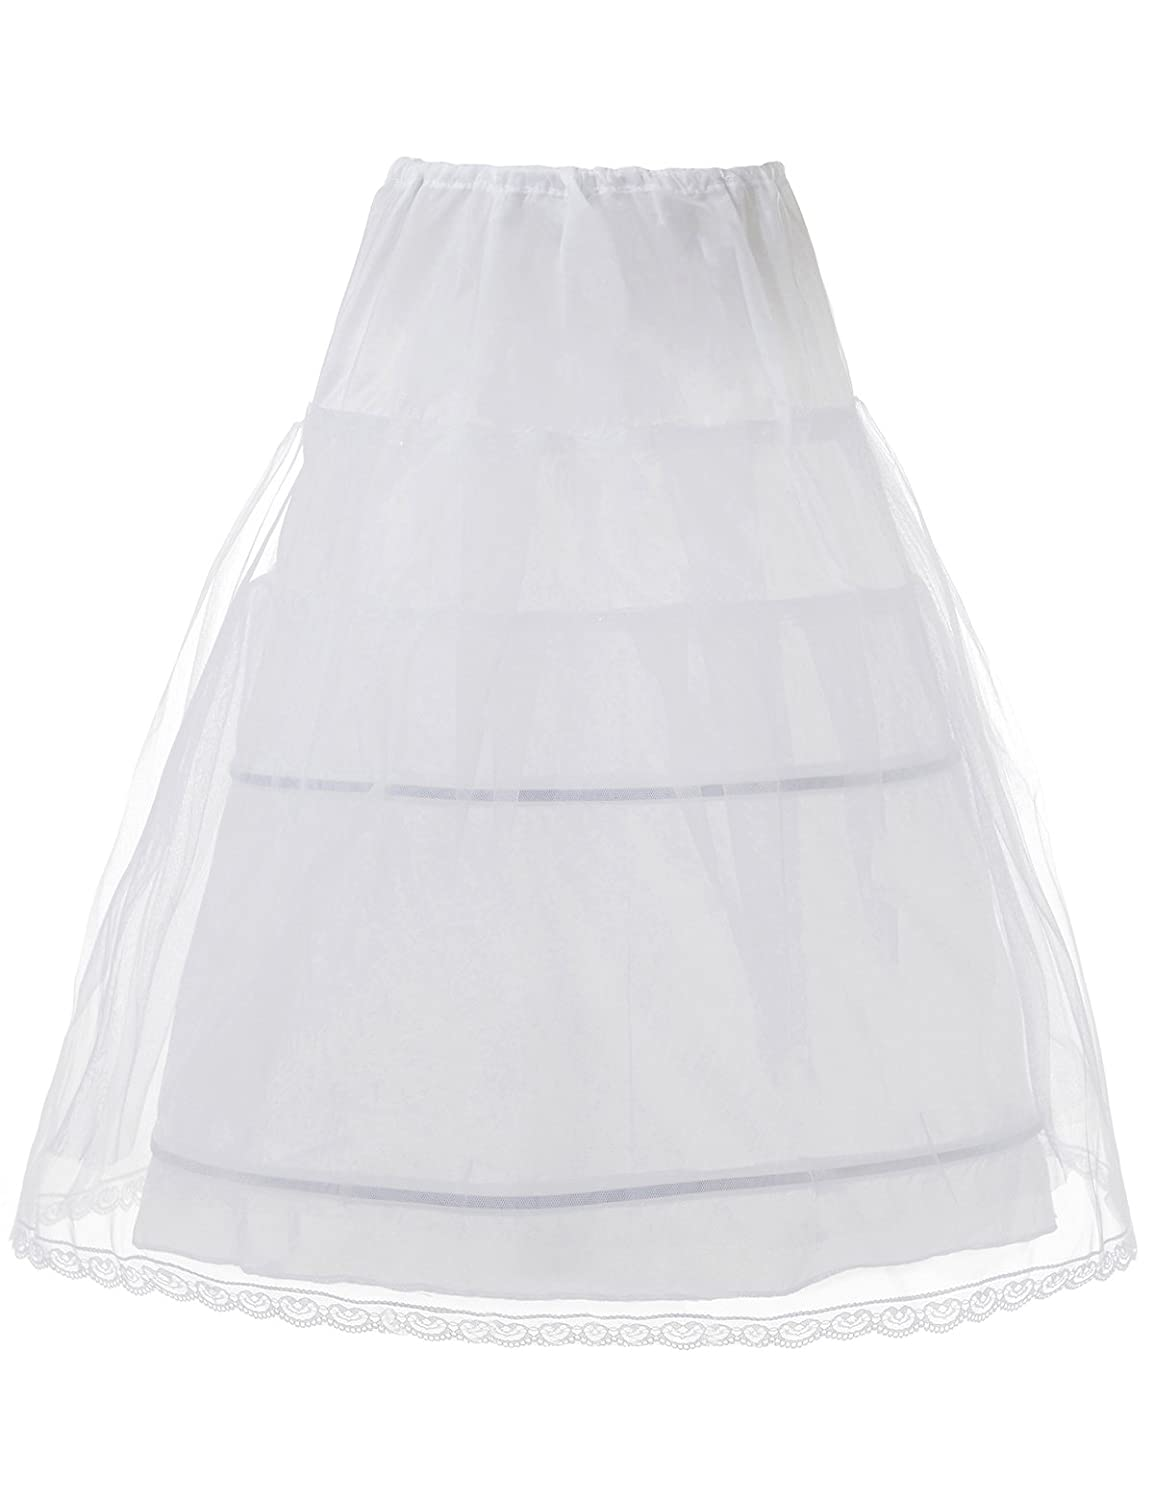 Remedios 2 Hoop Children White Petticoat Long Slips Flower Girl Crinoline Underskirt LWUKQC140003